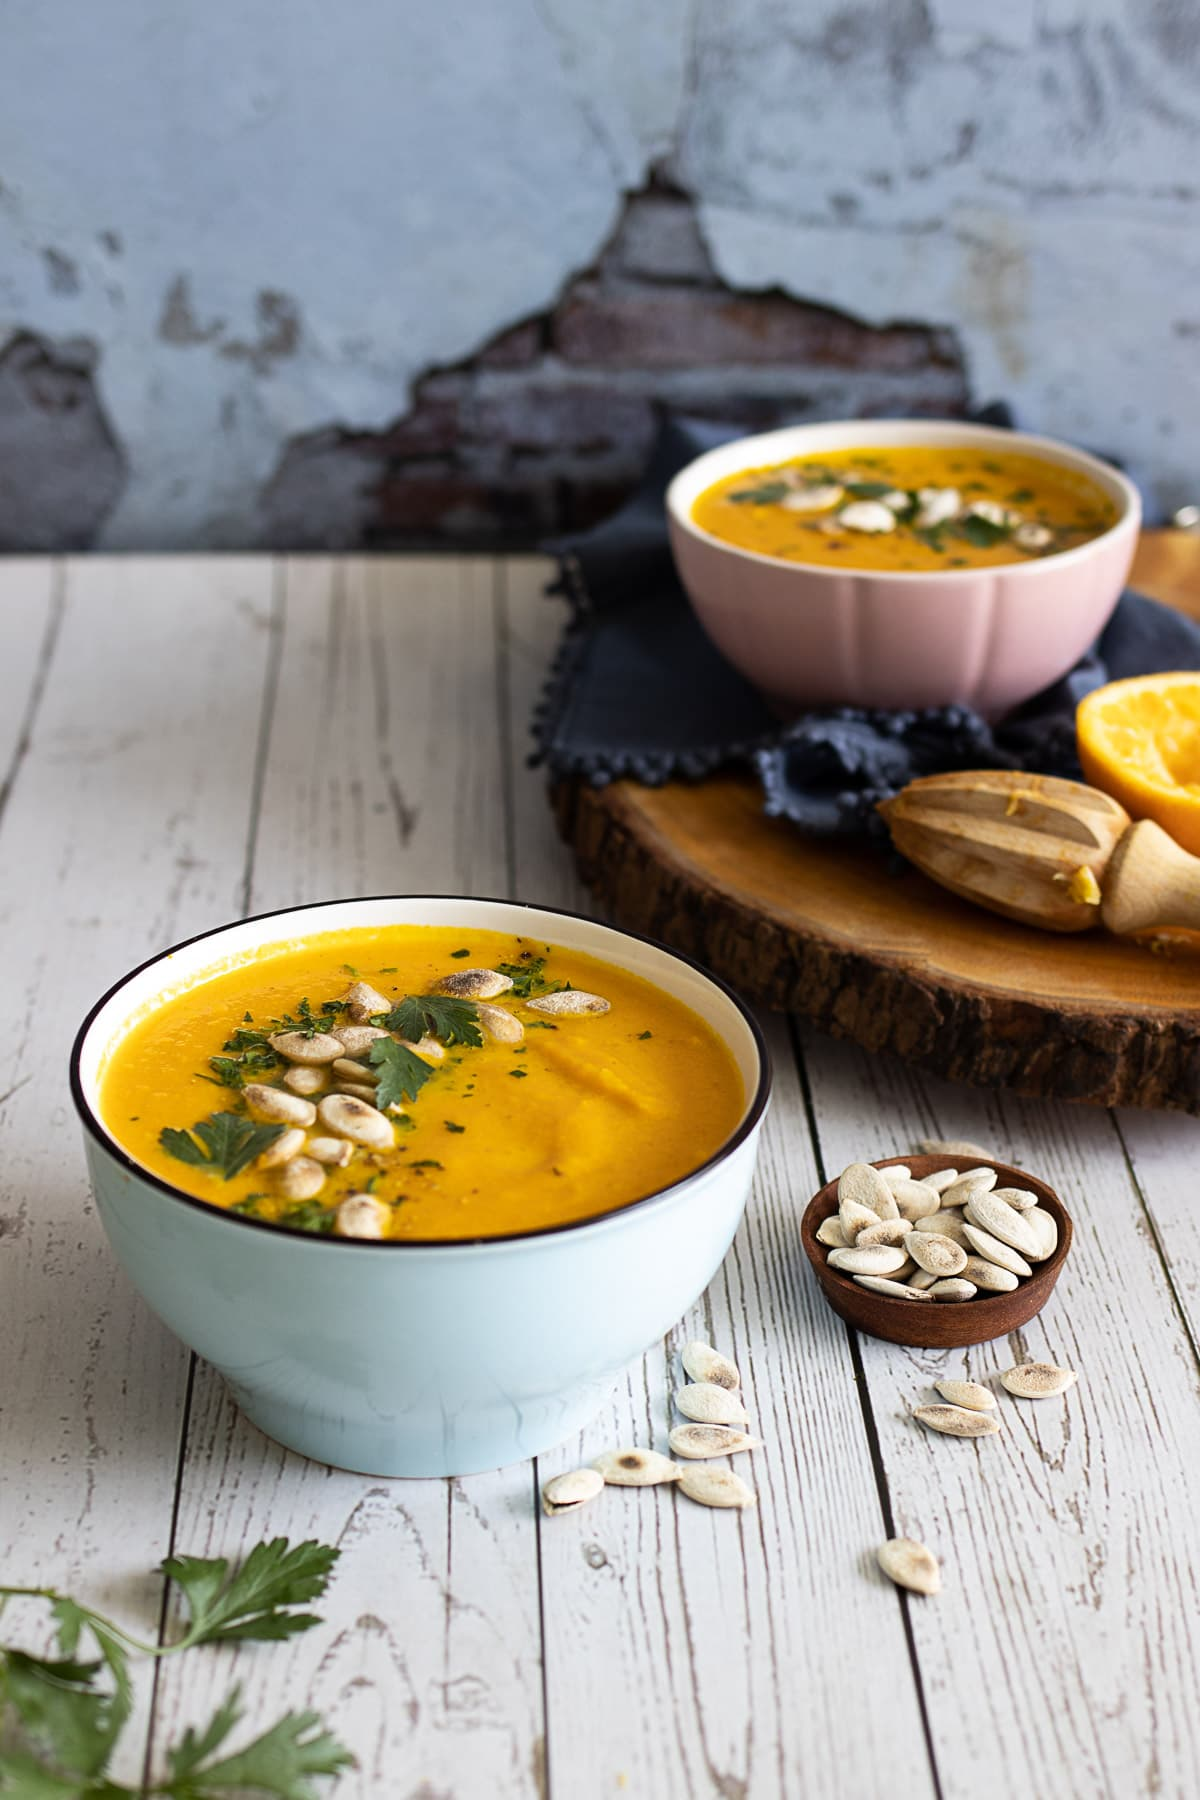 Carrot and orange soup on a table with pumpkin seeds